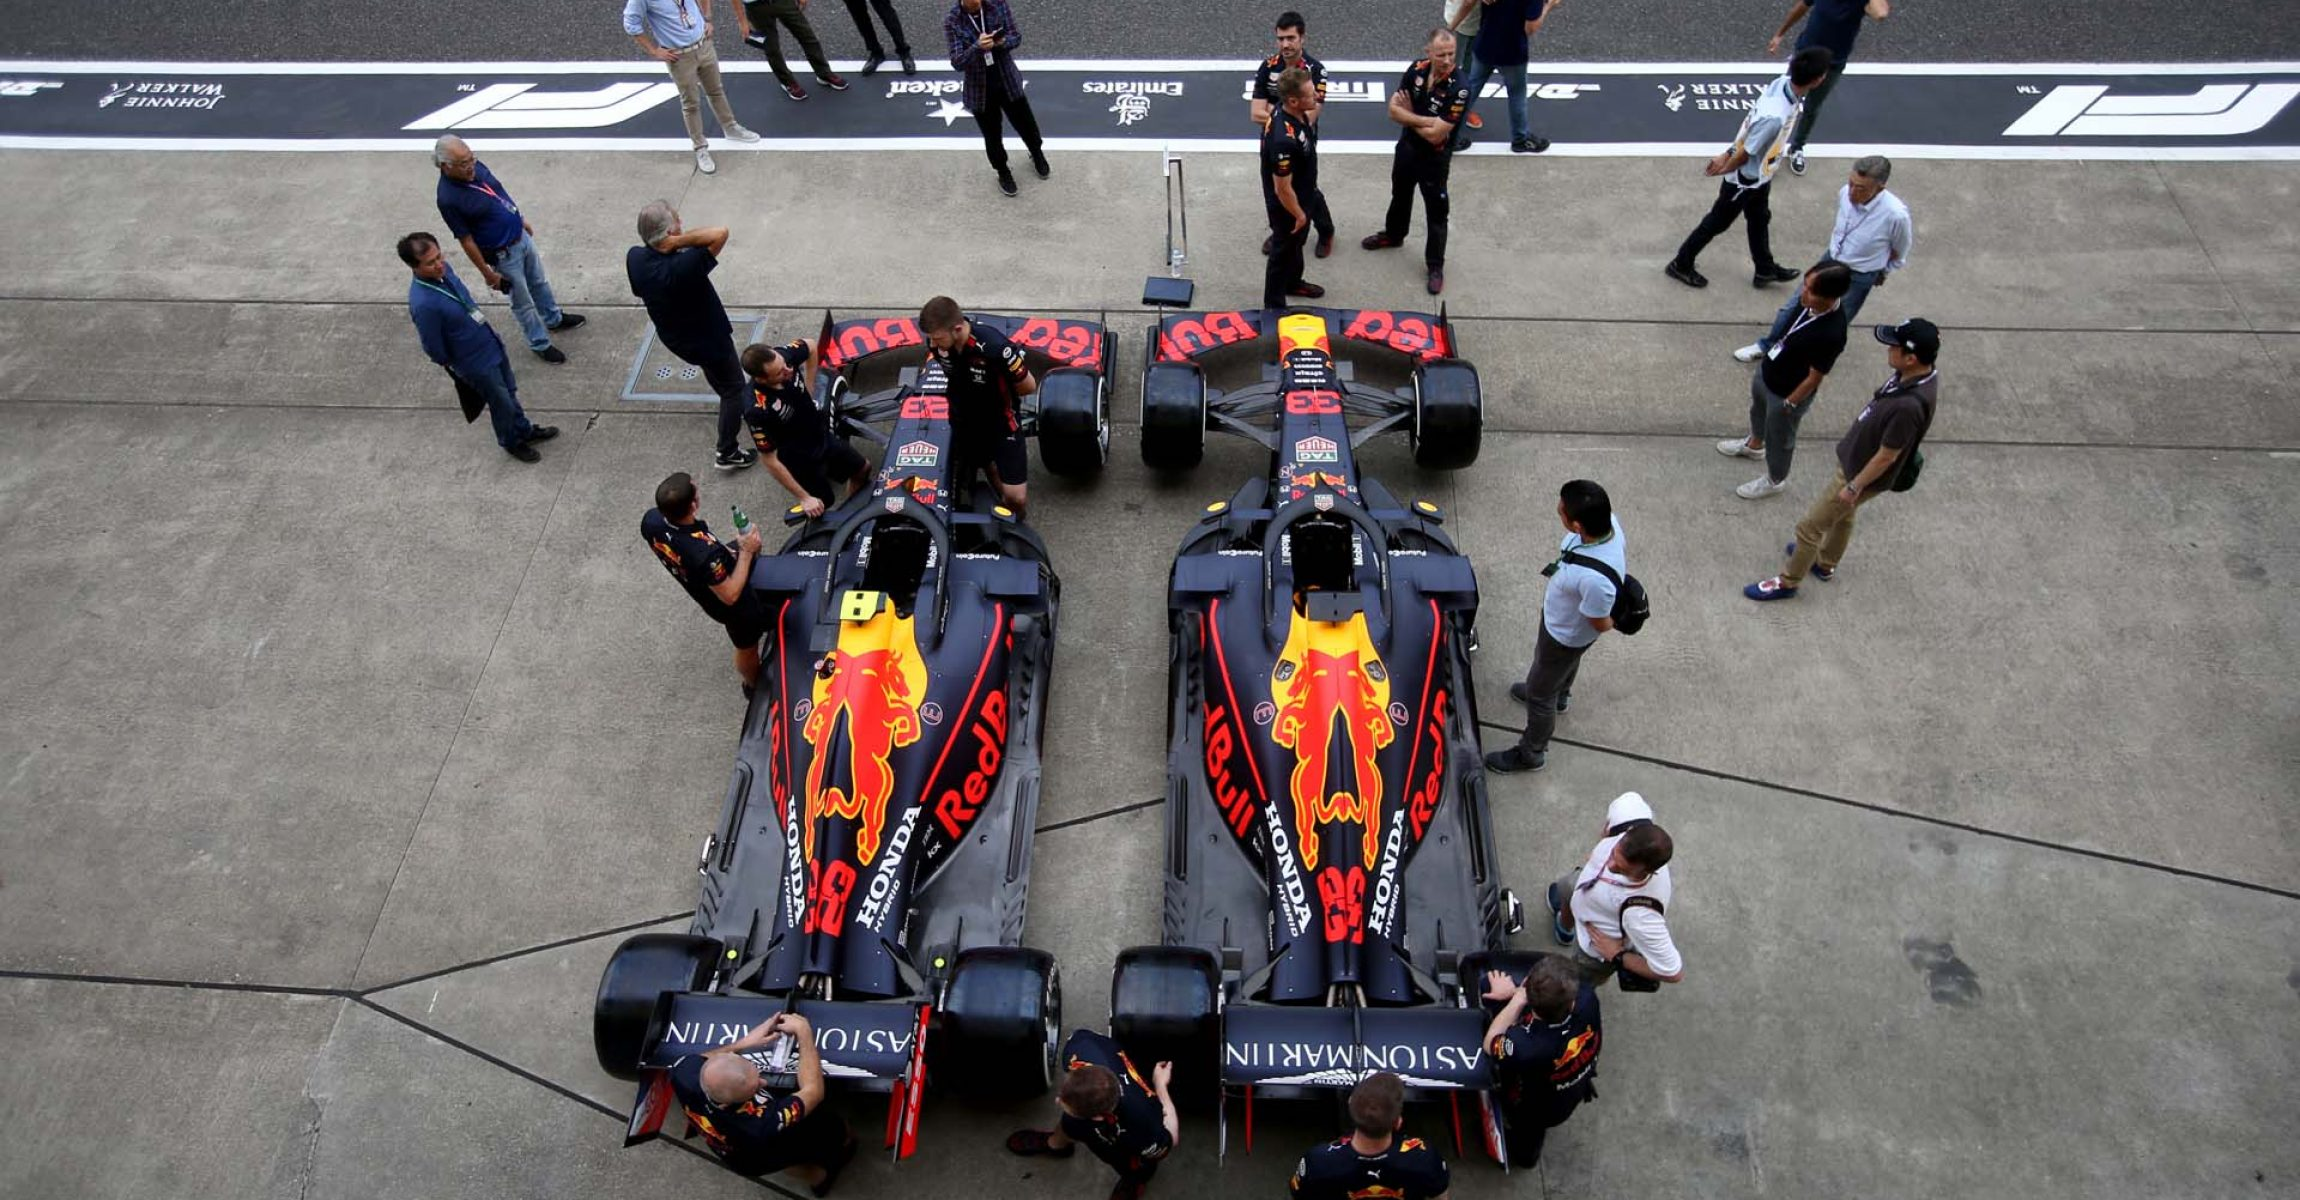 SUZUKA, JAPAN - OCTOBER 10: The cars of Max Verstappen of Netherlands and Red Bull Racing and Alexander Albon of Thailand and Red Bull Racing are seen parked next to each other in the Pitlane during previews ahead of the F1 Grand Prix of Japan at Suzuka Circuit on October 10, 2019 in Suzuka, Japan. (Photo by Charles Coates/Getty Images) // Getty Images / Red Bull Content Pool  // AP-21U1Q54C11W11 // Usage for editorial use only //